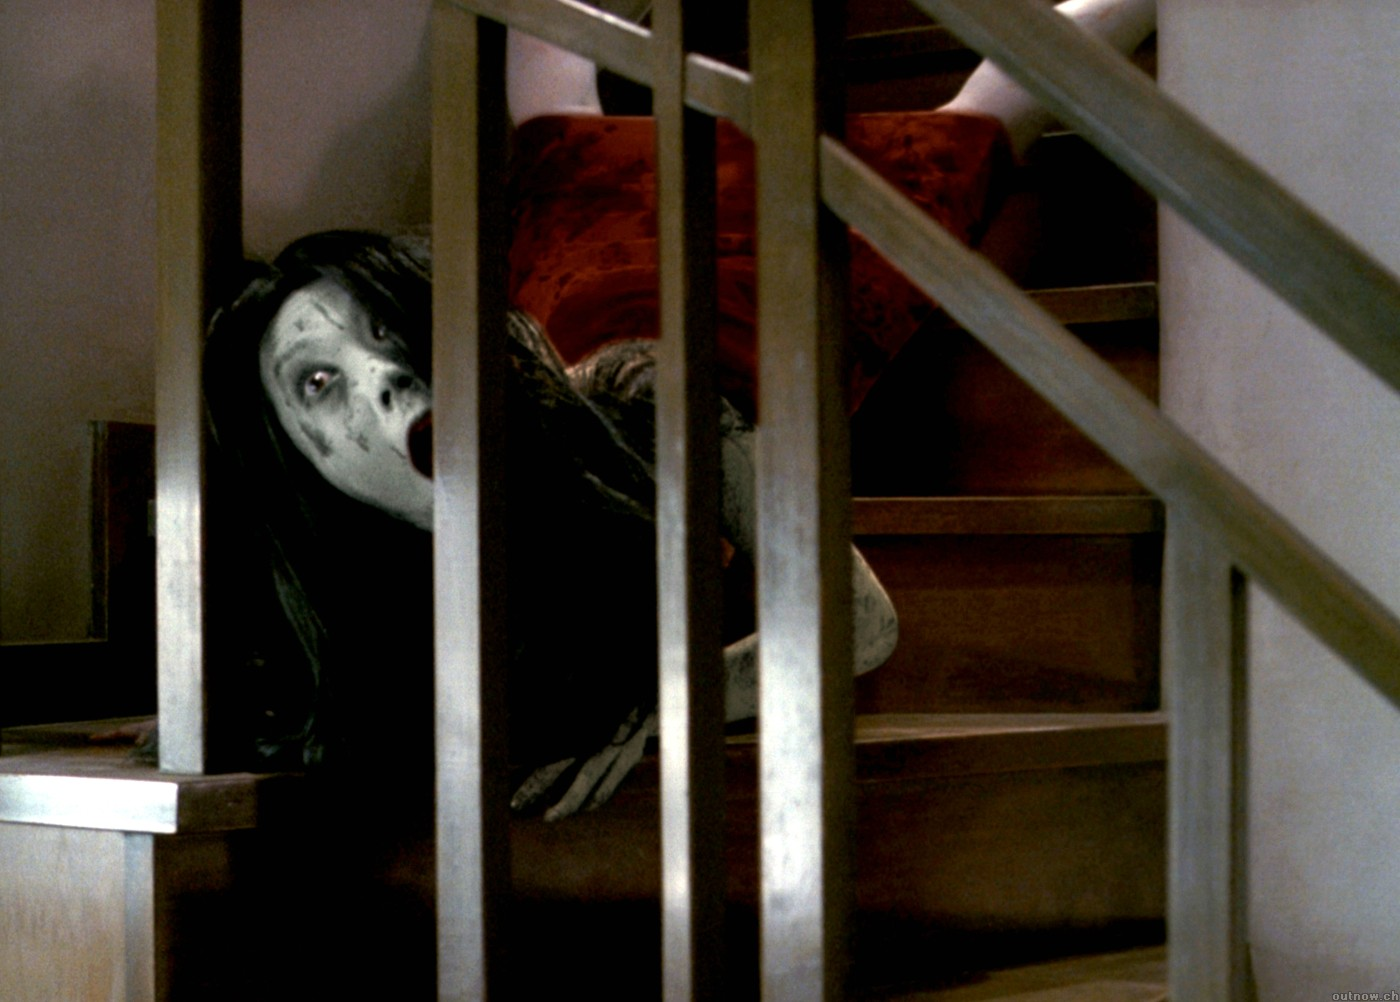 THE GRUDGE: Kayako (Takako Fuji) performs her infamous downstairs crawl in the American remake.